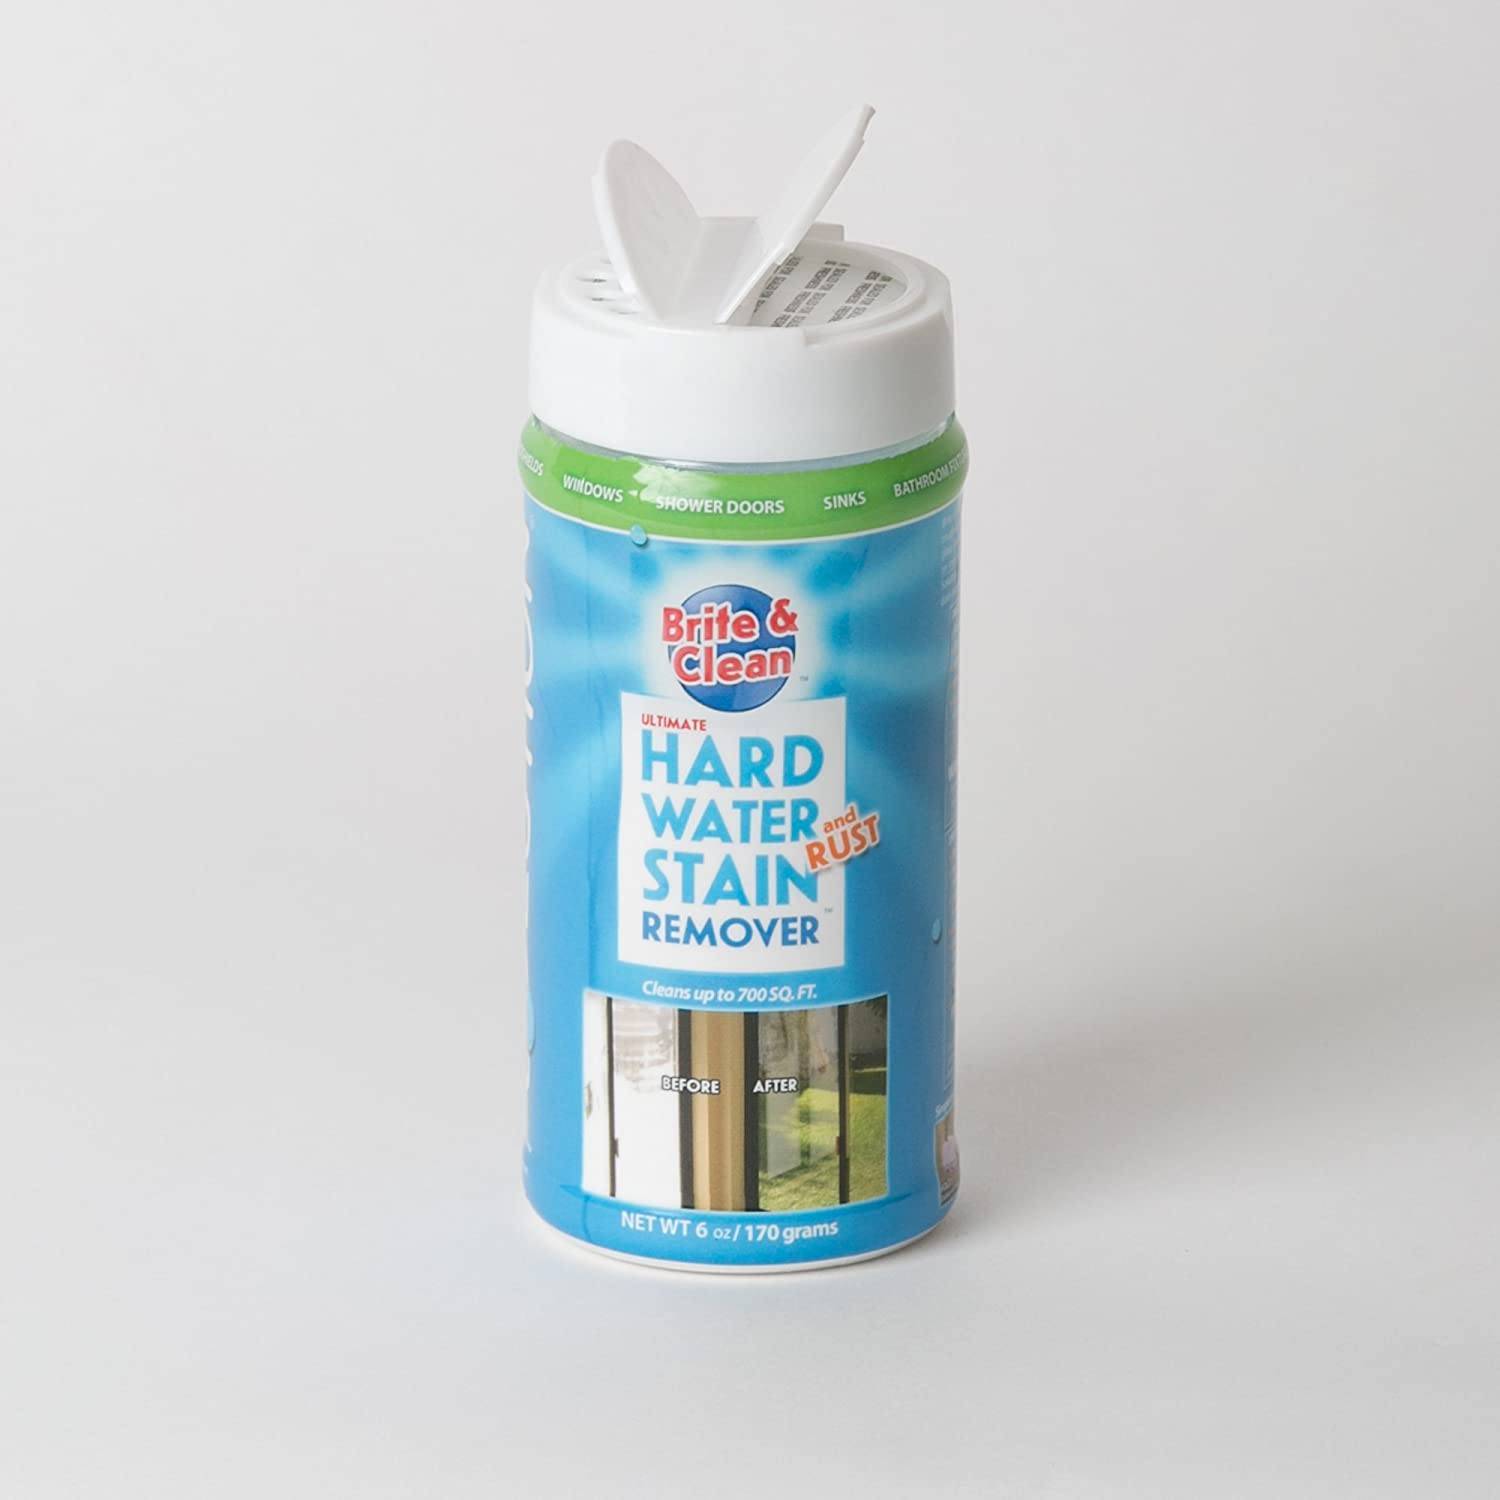 Amazon.com: Brite & Clean Ultimate Hard Water Stain Remover: Health ...